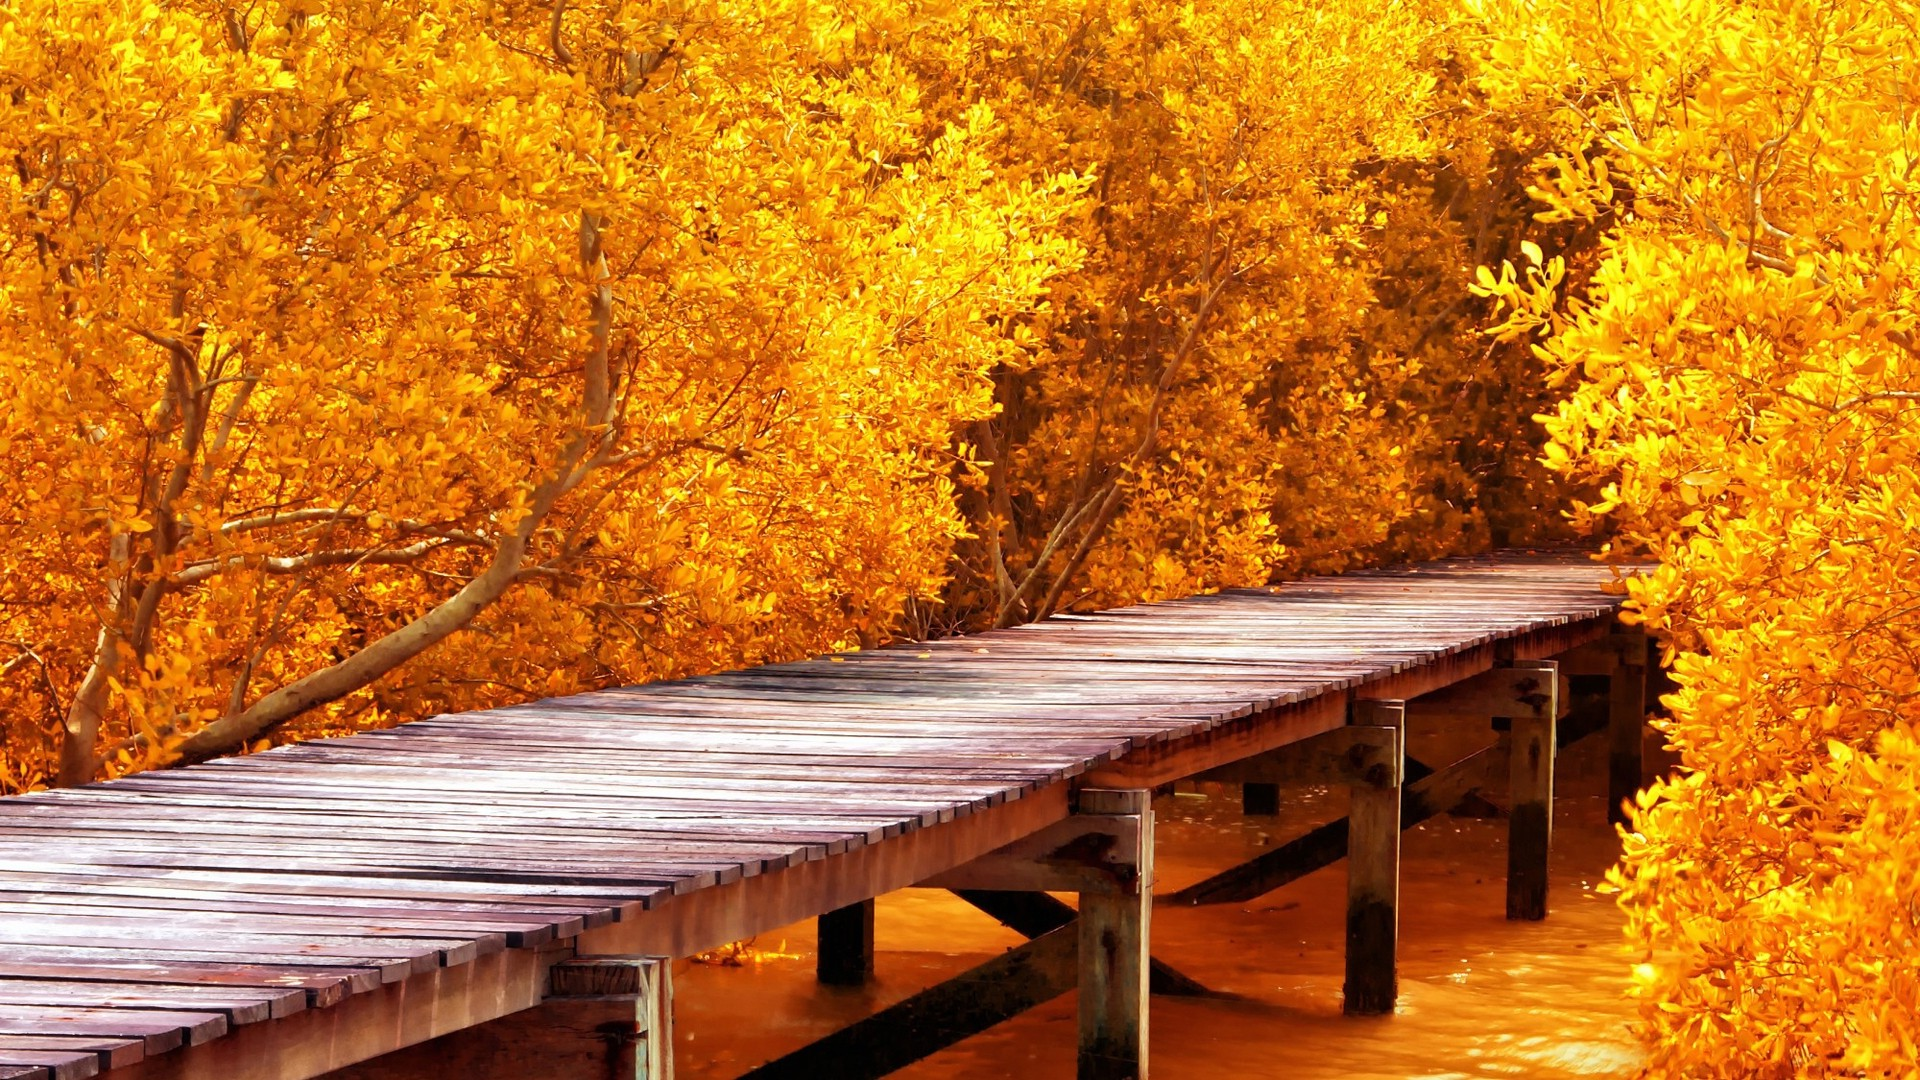 Anime Fall 2015 Wallpaper Nature Landscape Pier Water Wooden Surface Trees